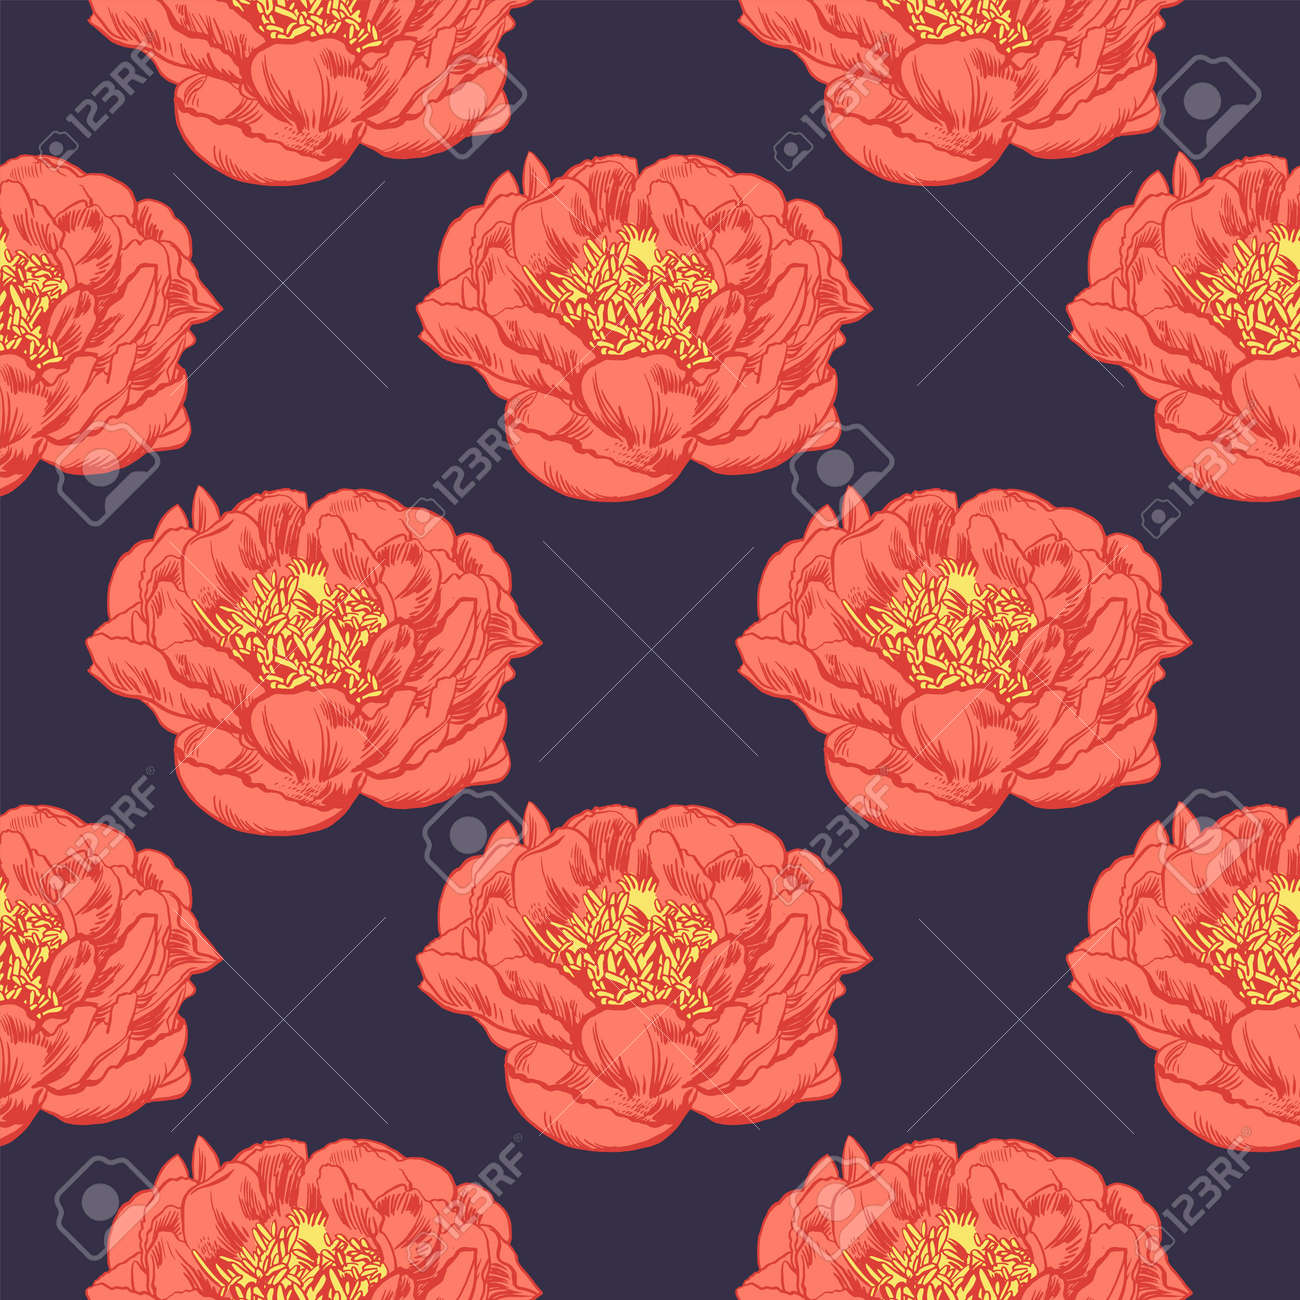 Hand Drawing Peonies Vector Graphic Flowers Decorative Background For Cards Invitations Template Greeting Card